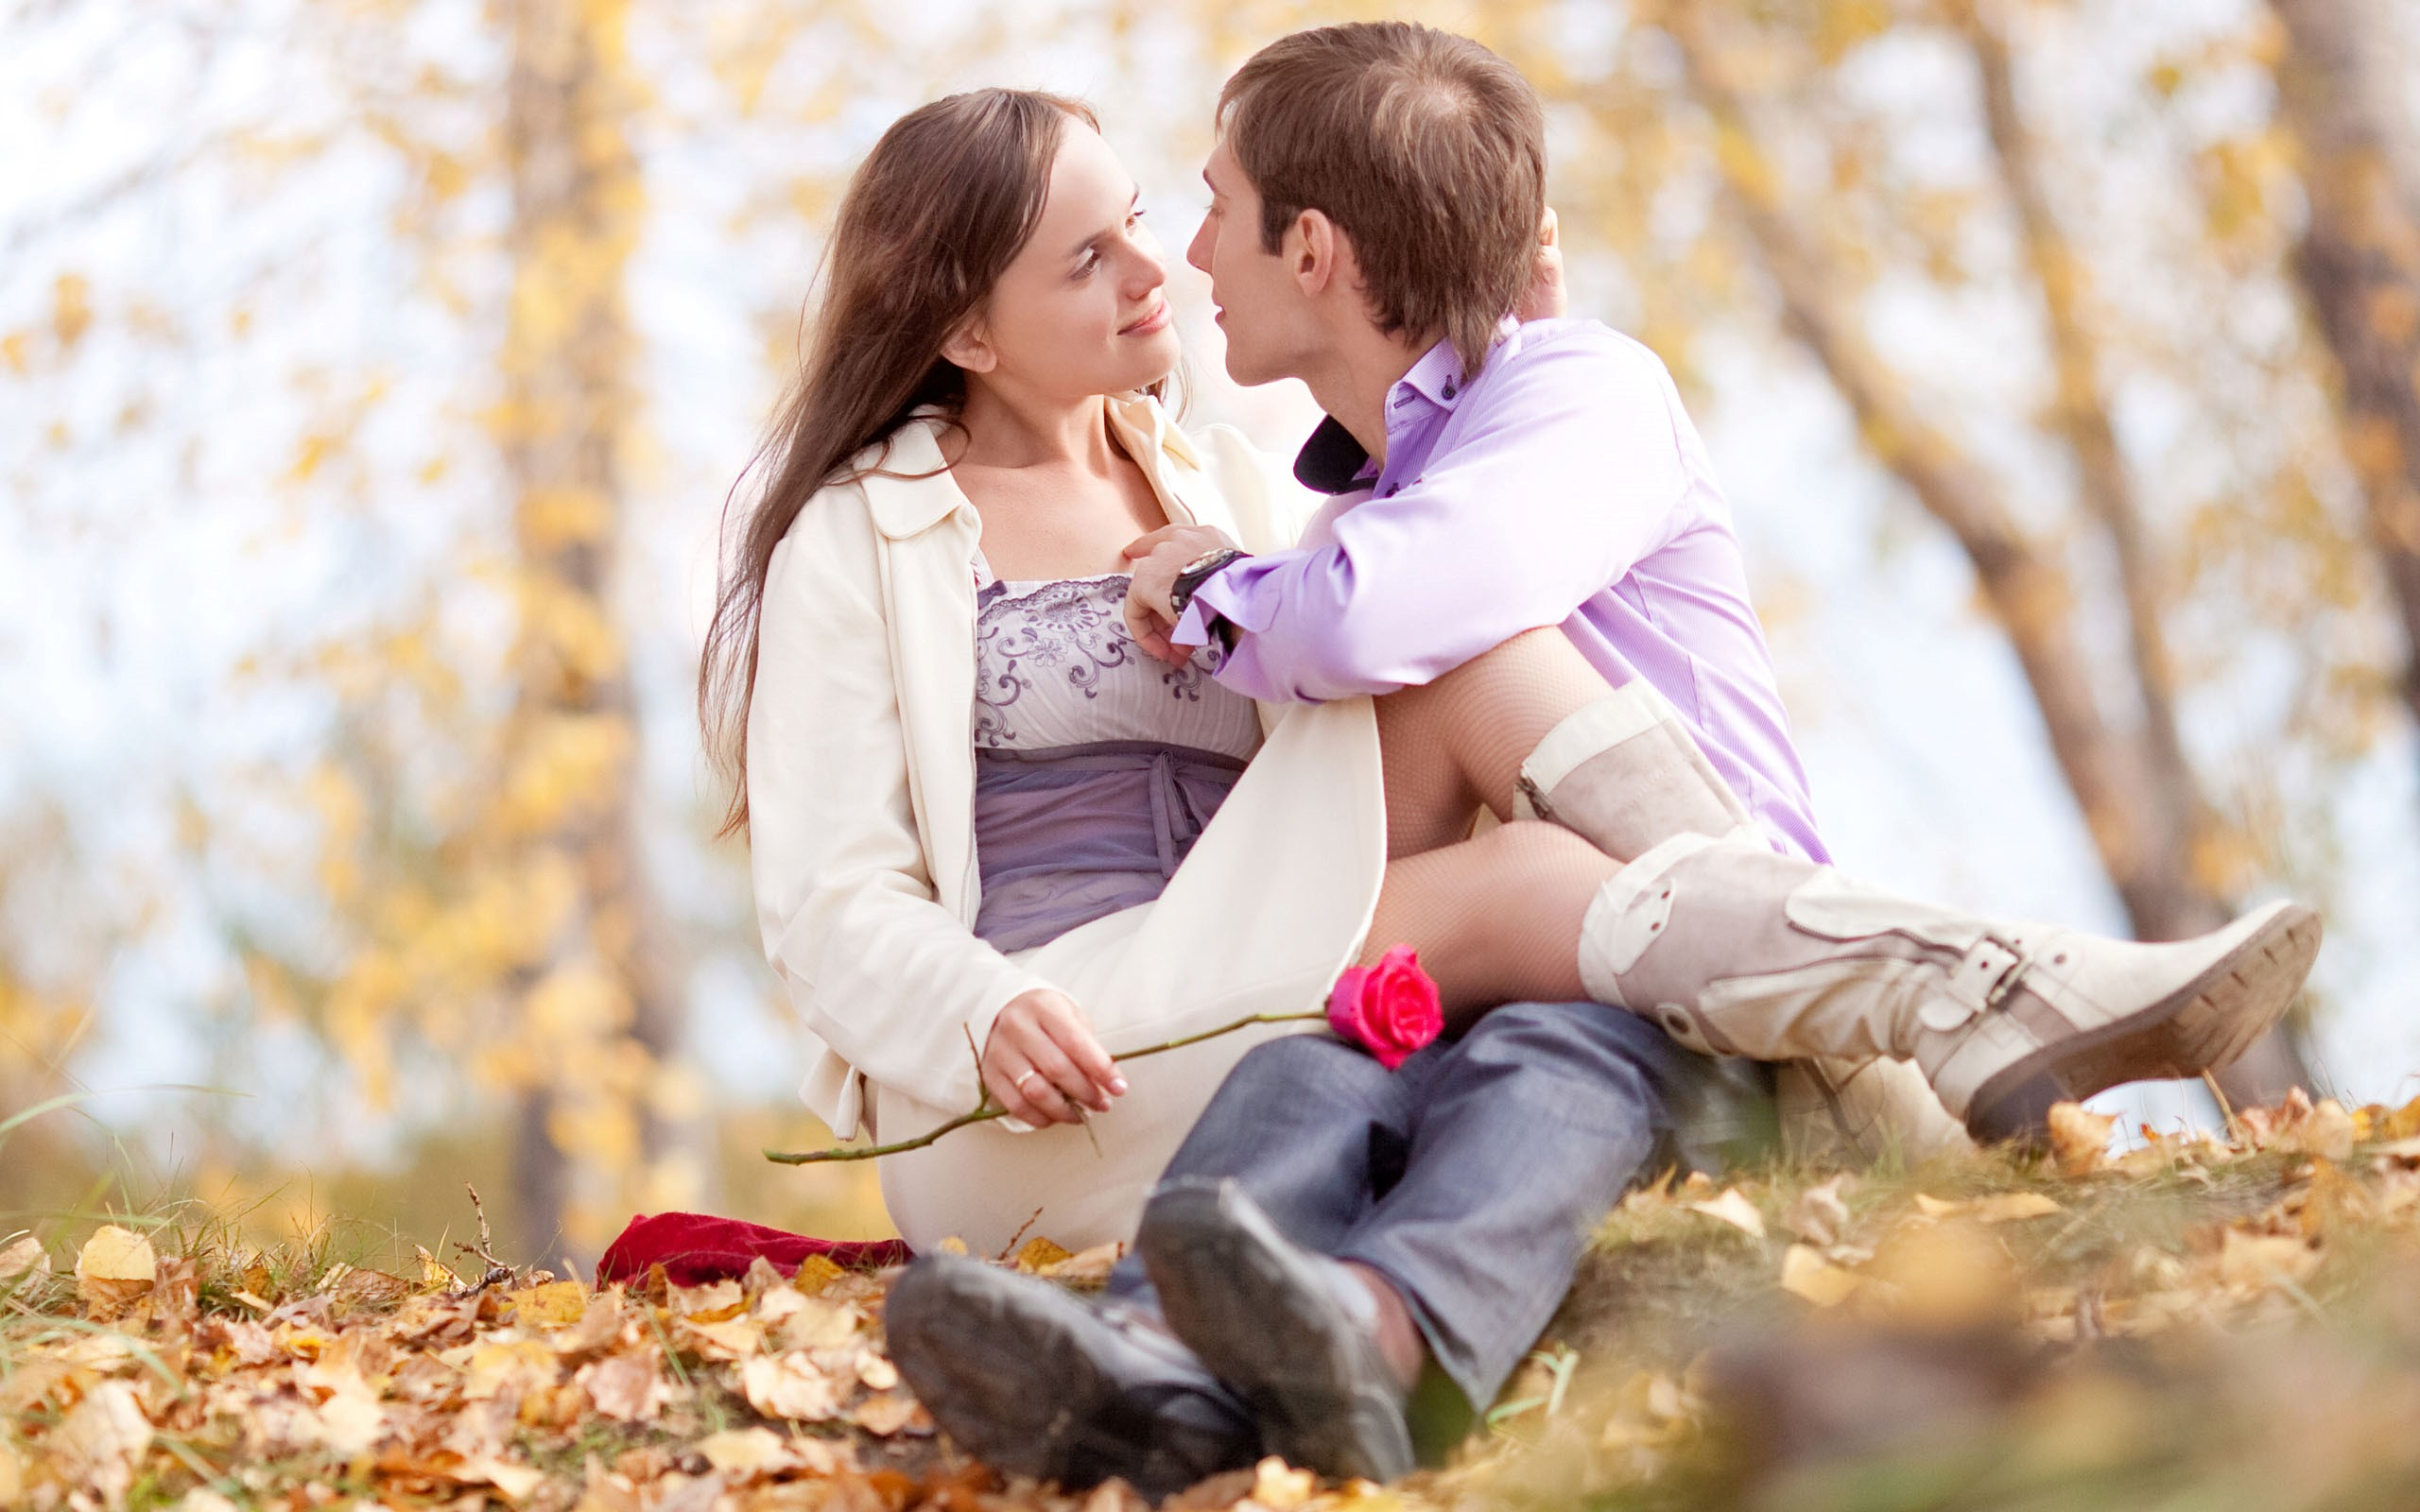 Romantic Love Hd Images Free Download 16 Background Hdlovewall Com